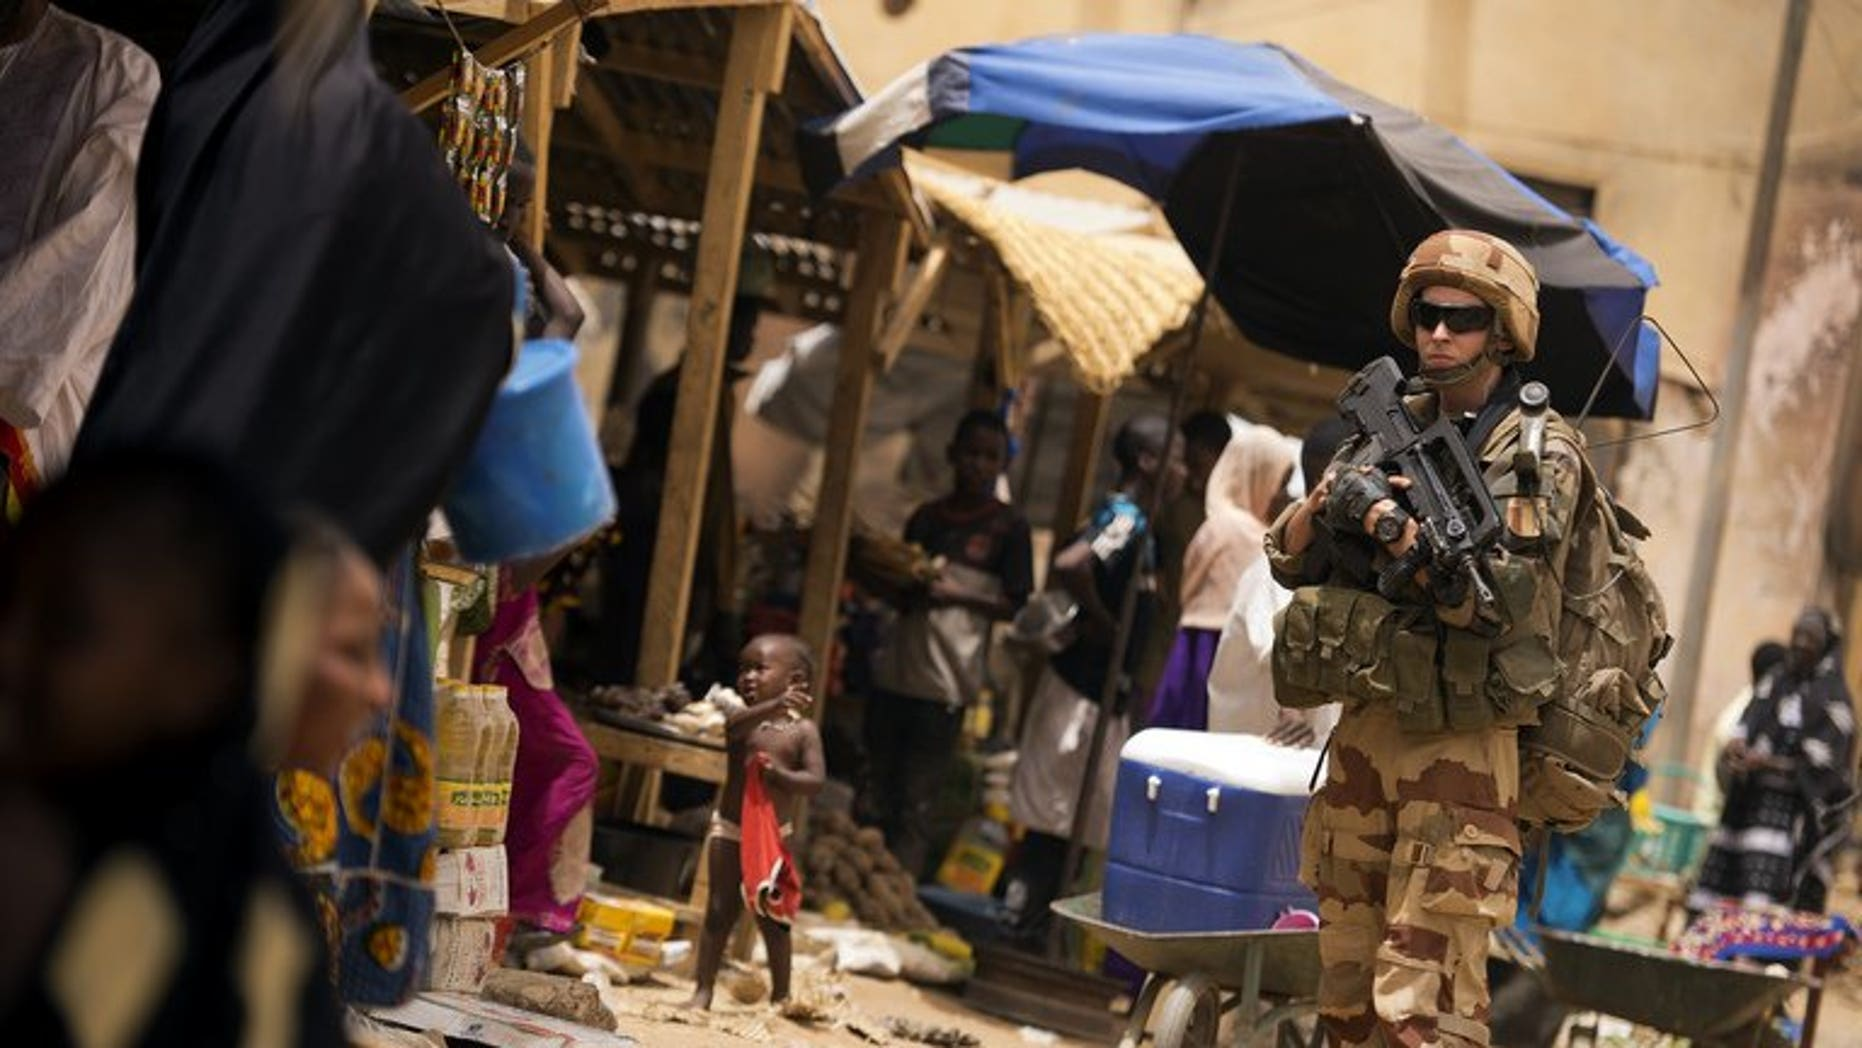 A French soldier patrols in the street in Gao on June 13, 2013.